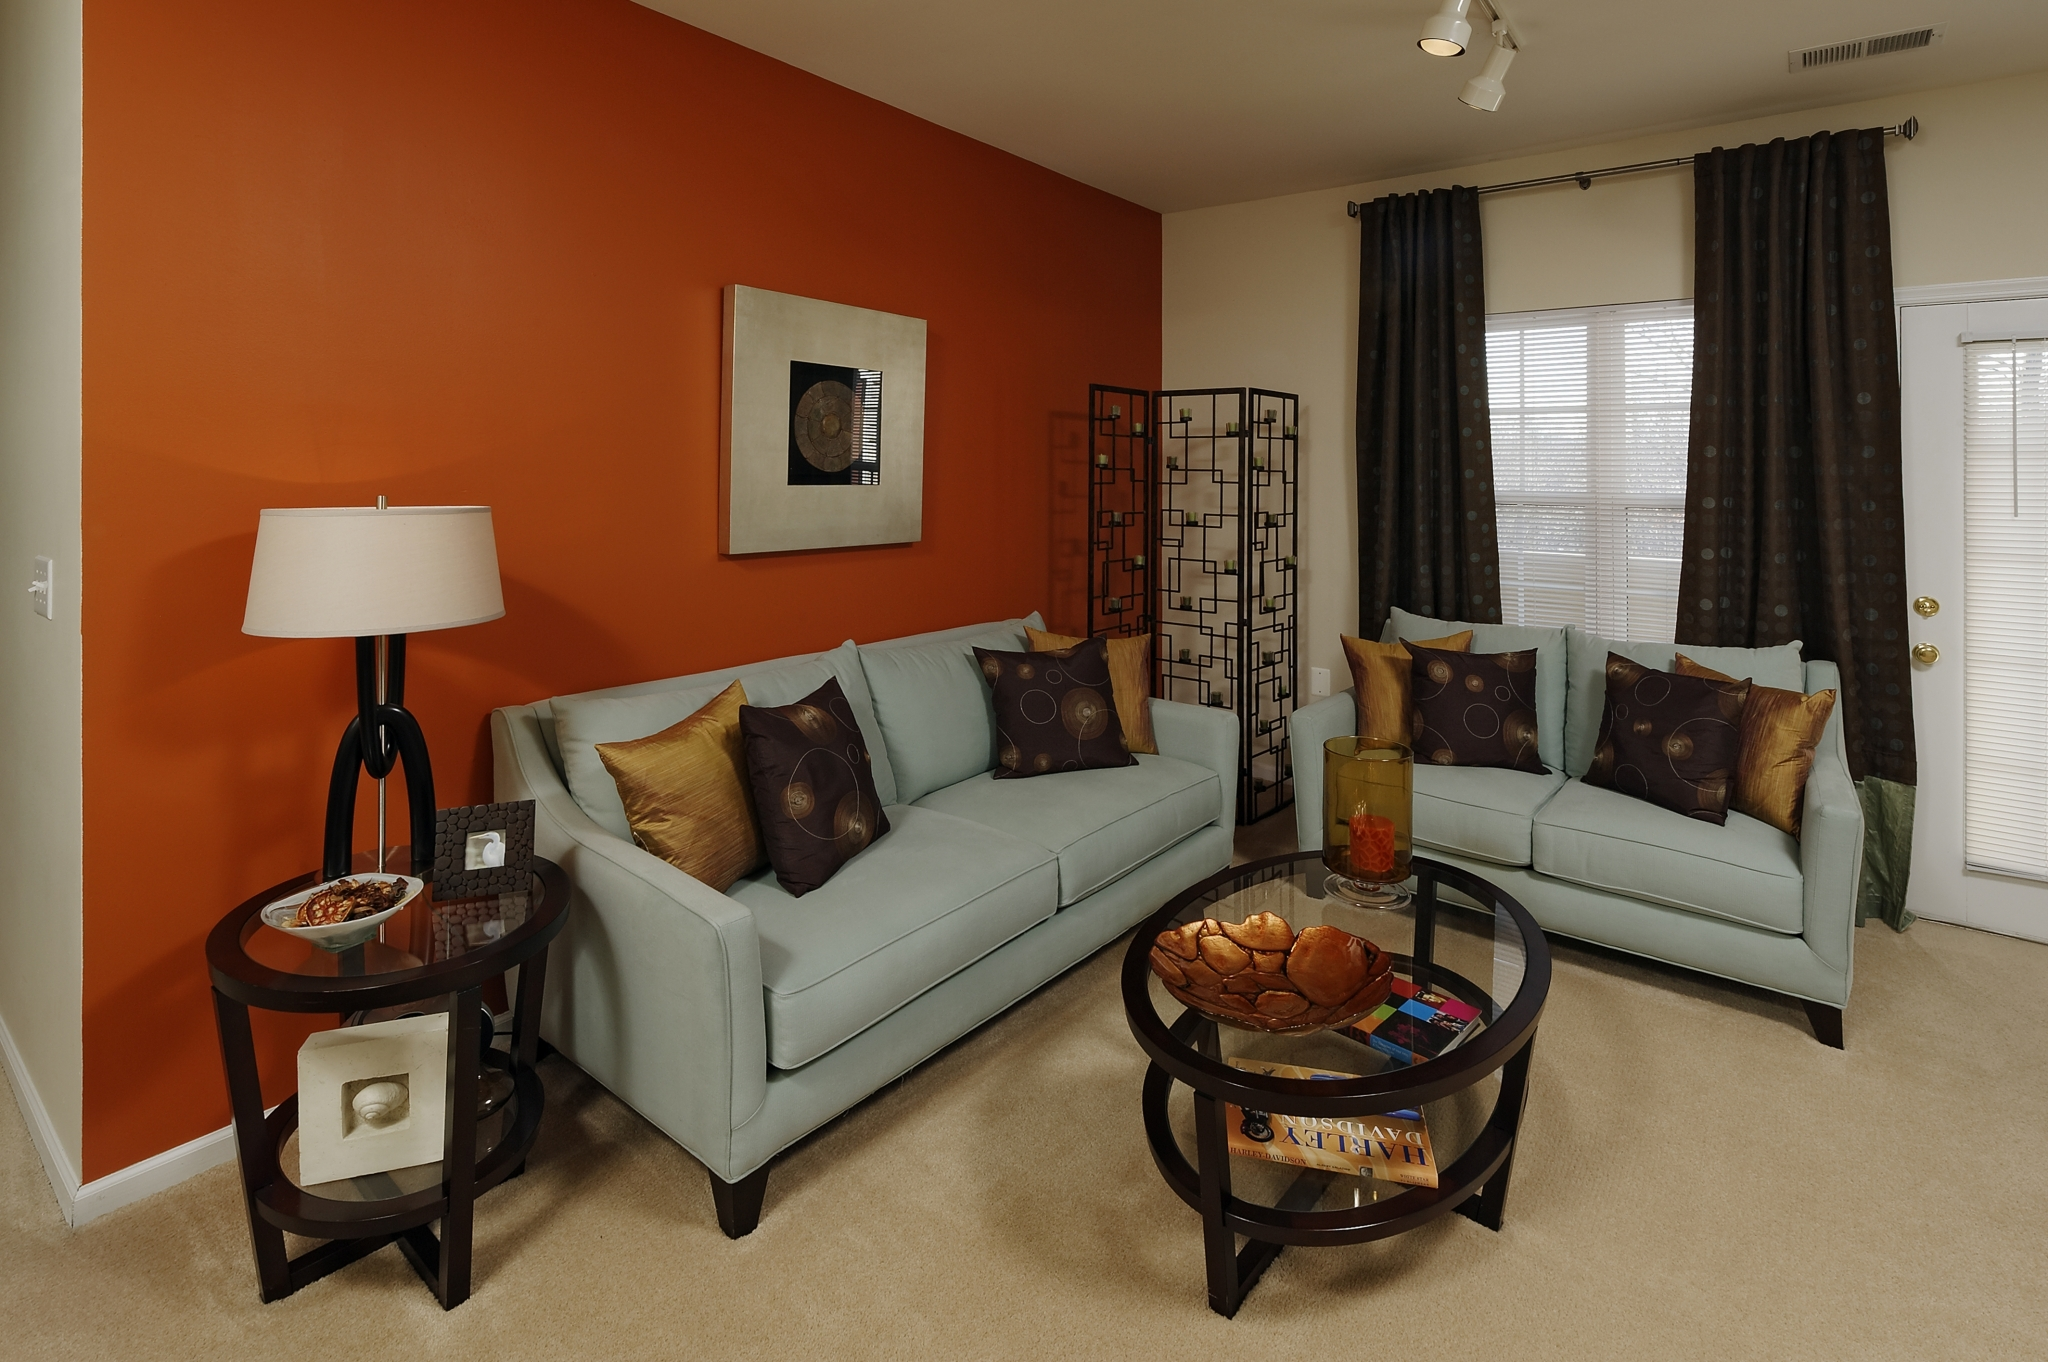 Design the Living Room In Your Apartment on a Budget With These 5 Tips-image